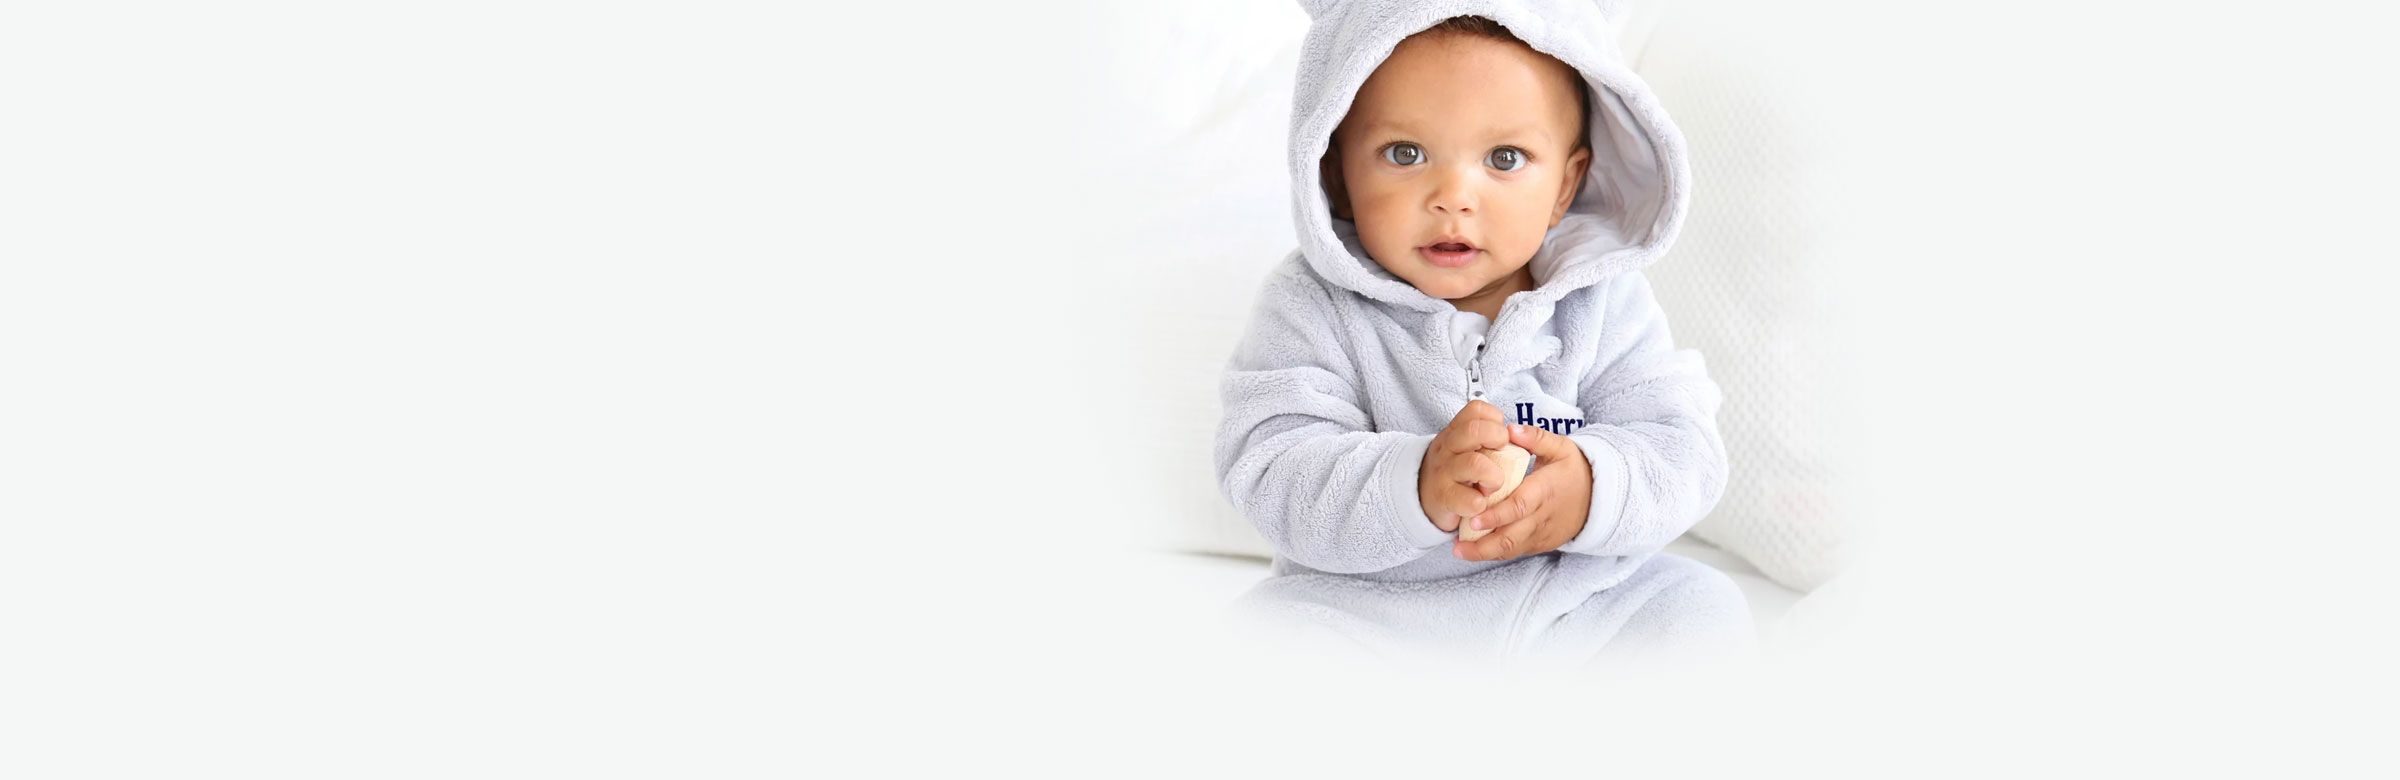 ead800a5 Personalised baby gifts worthy of lasting memories. From teddies and toys  to blankets and clothing, each piece comes with the brand's signature  luxury gift ...